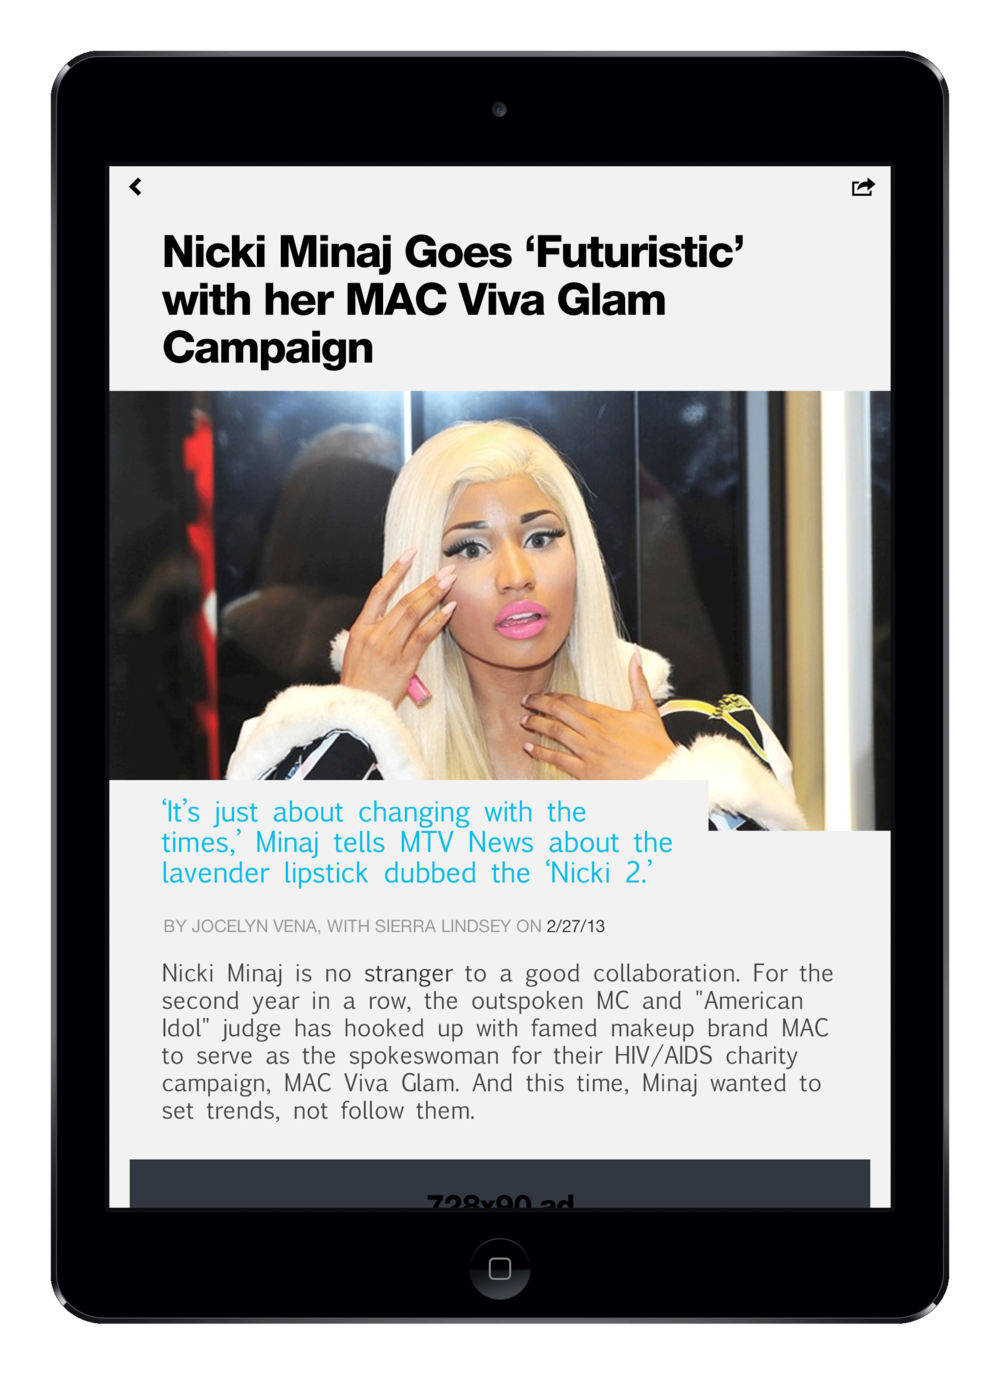 mtv-news-ipad-screens-05.png